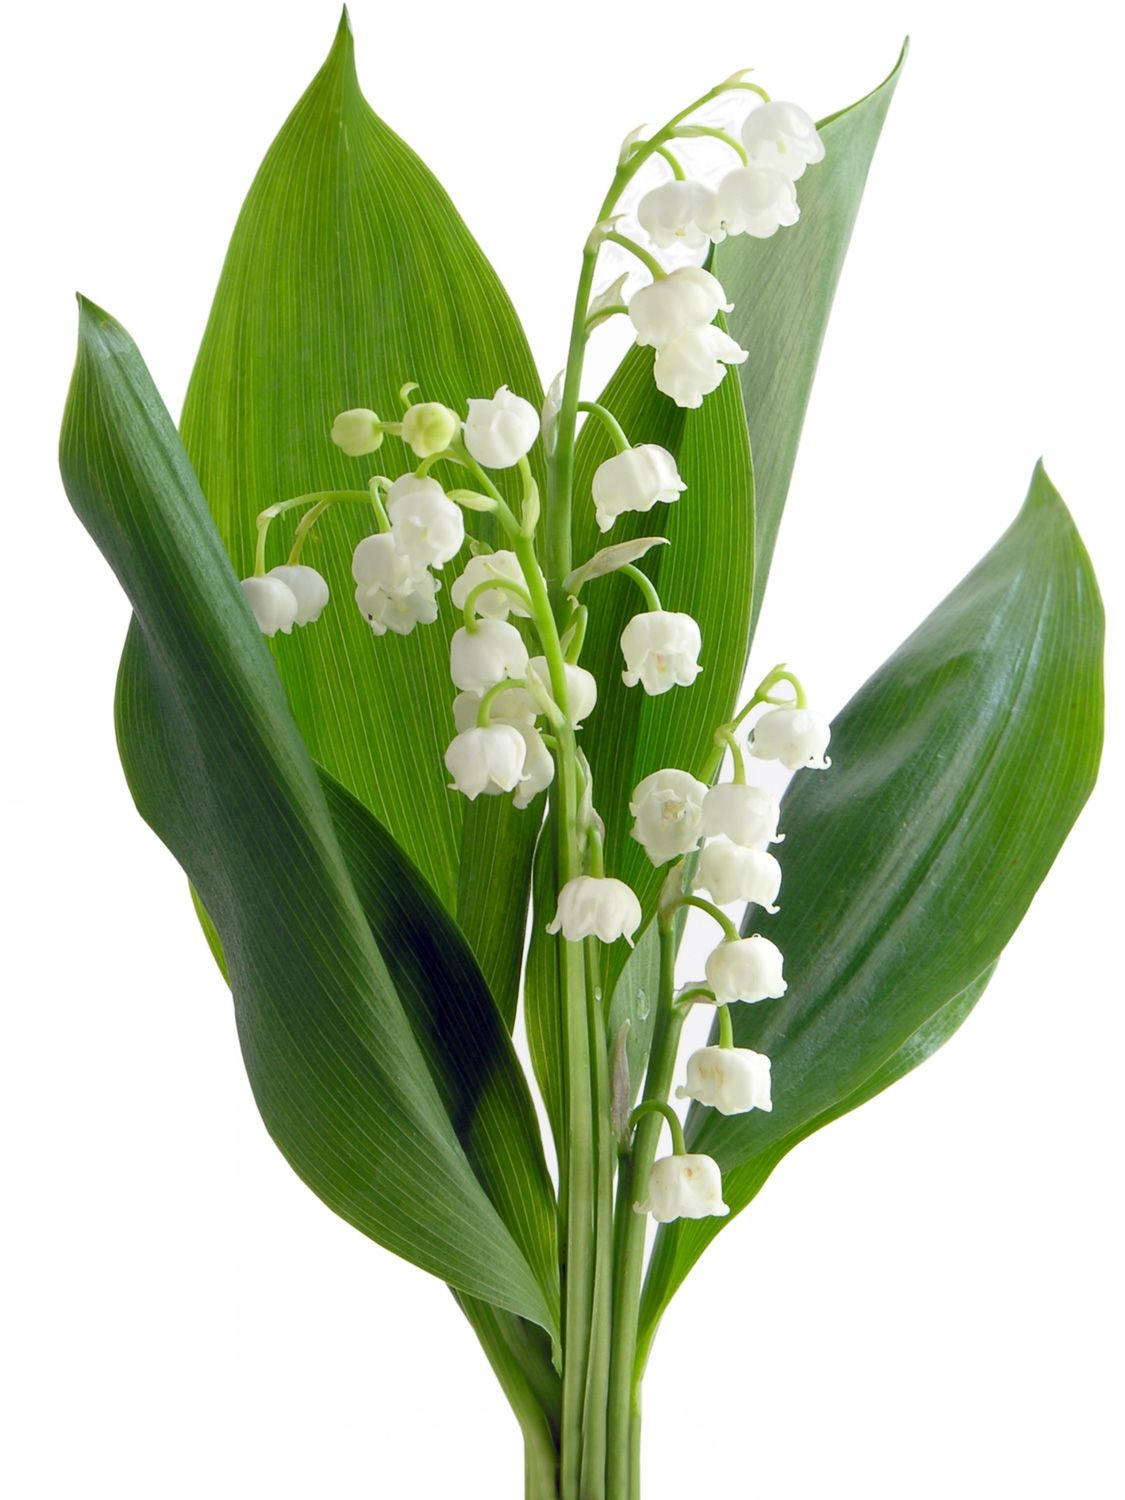 Lily of the valley. COLORS white and pale pink (rare